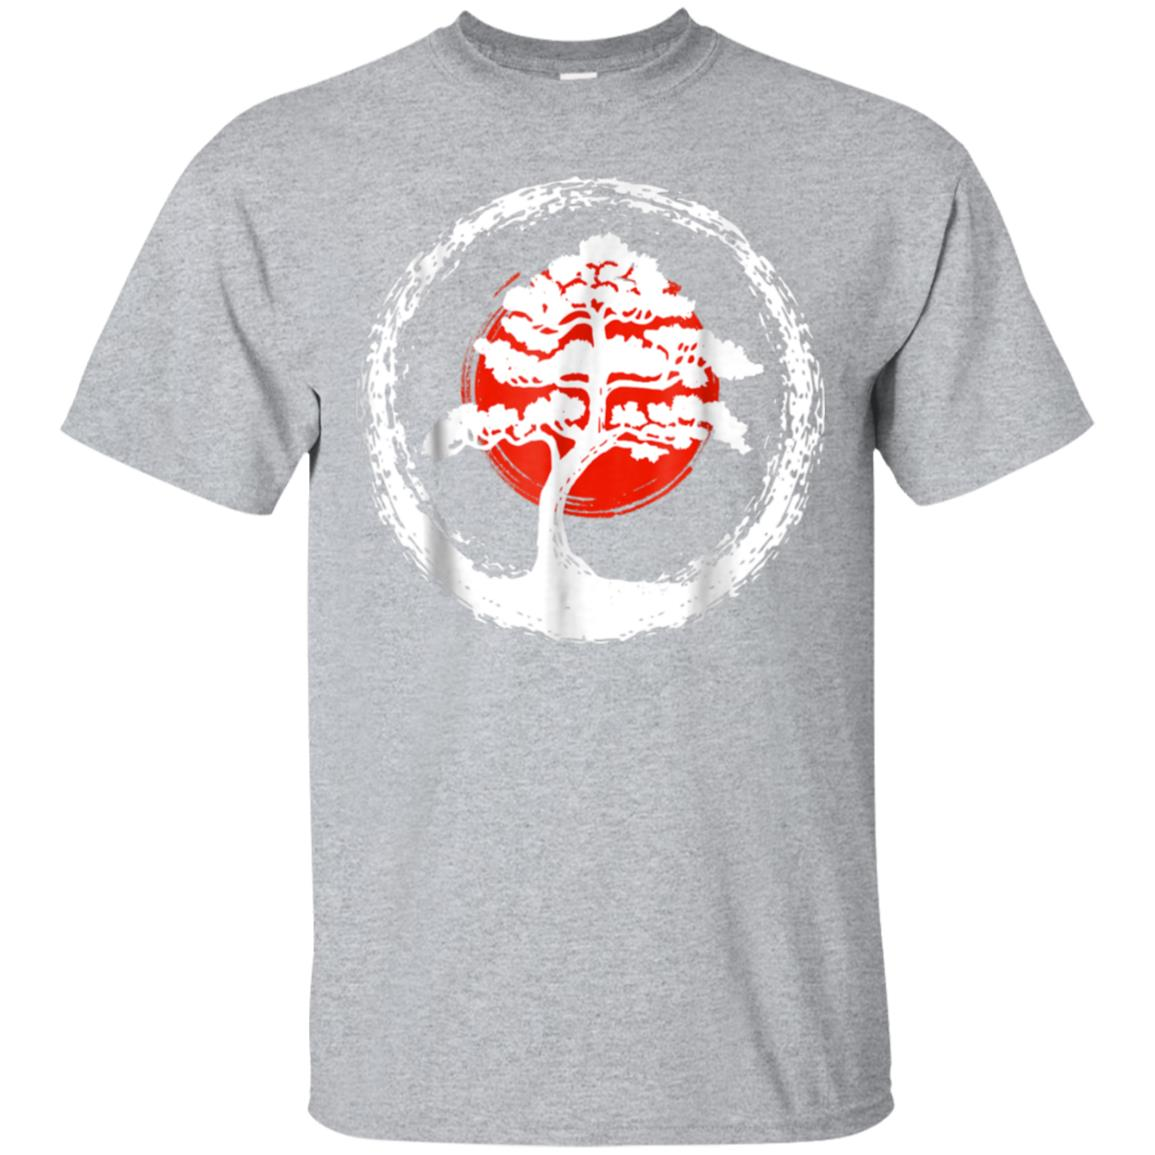 Bonsai Tree Japanese Calligraphy Rising Sun Shirt 99promocode